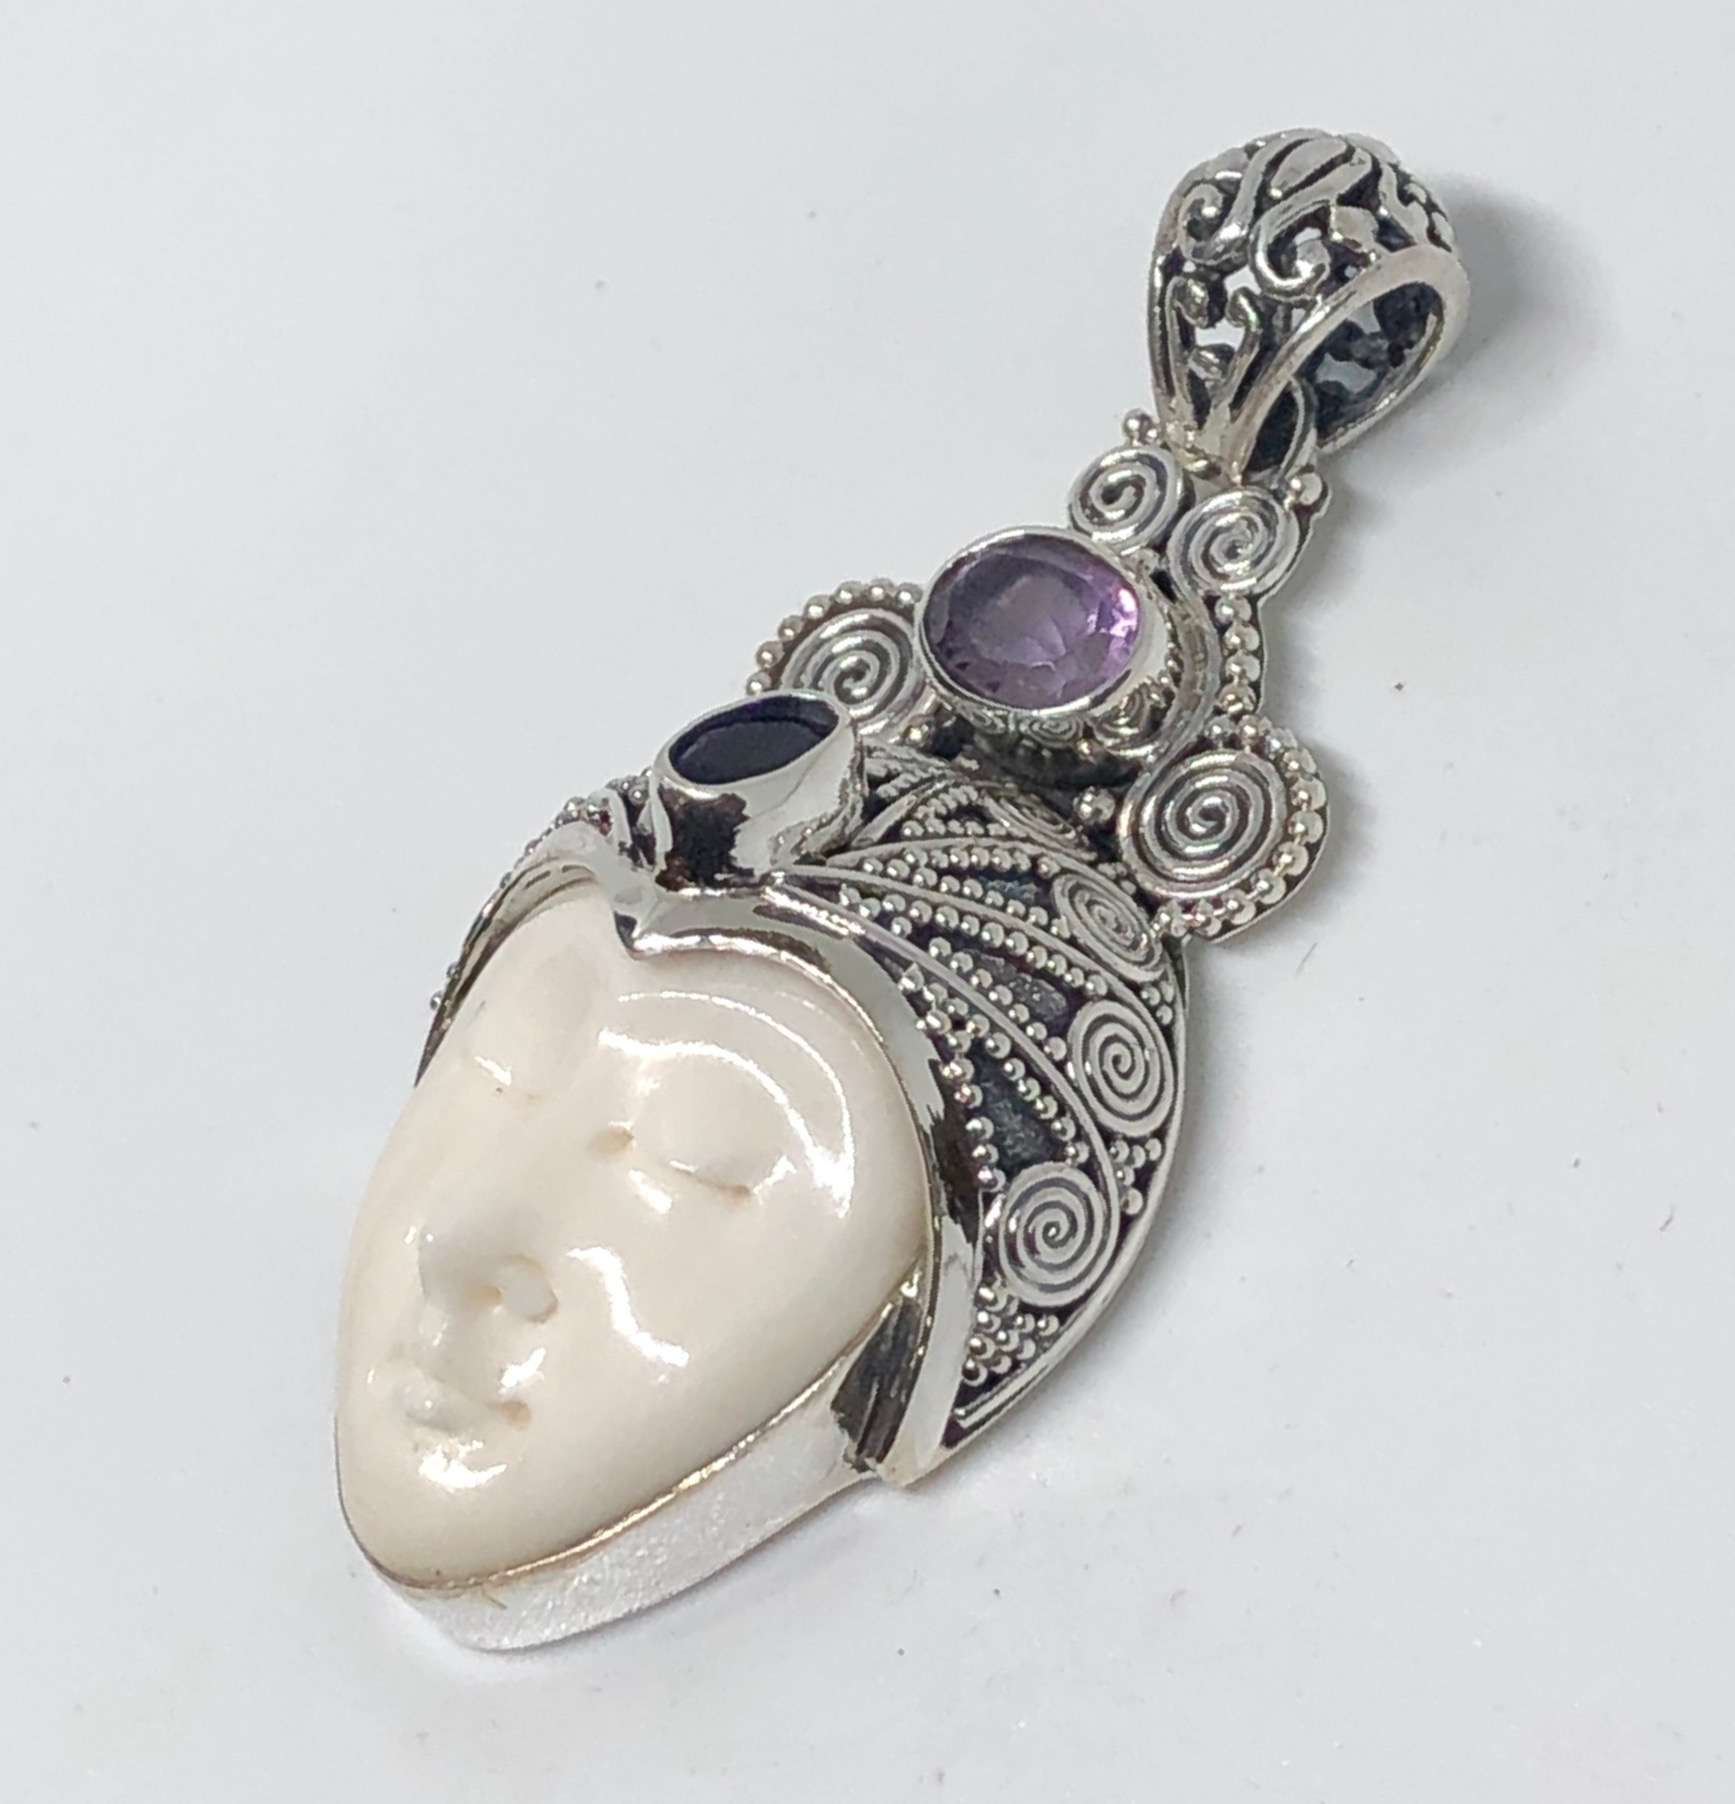 BALI SILVER BONE FACE PENDANT WITH GEMSTONES